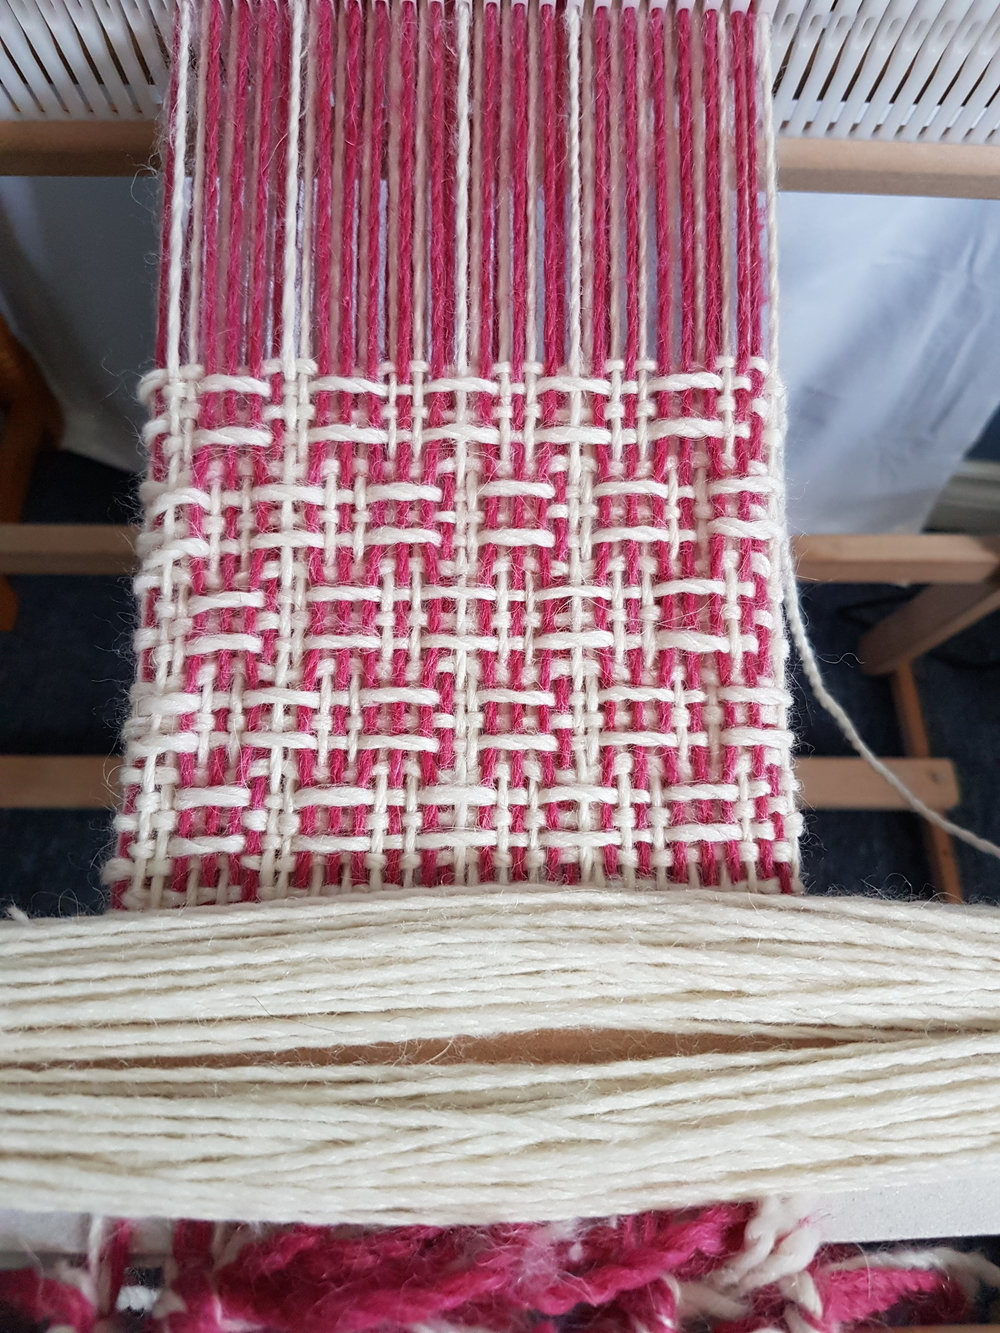 Blended Fabric Breeze Of Admiration Woven Tapestries In Best And Newest About Weaving — What's On The Loom — The Rogue Weaver (View 8 of 20)